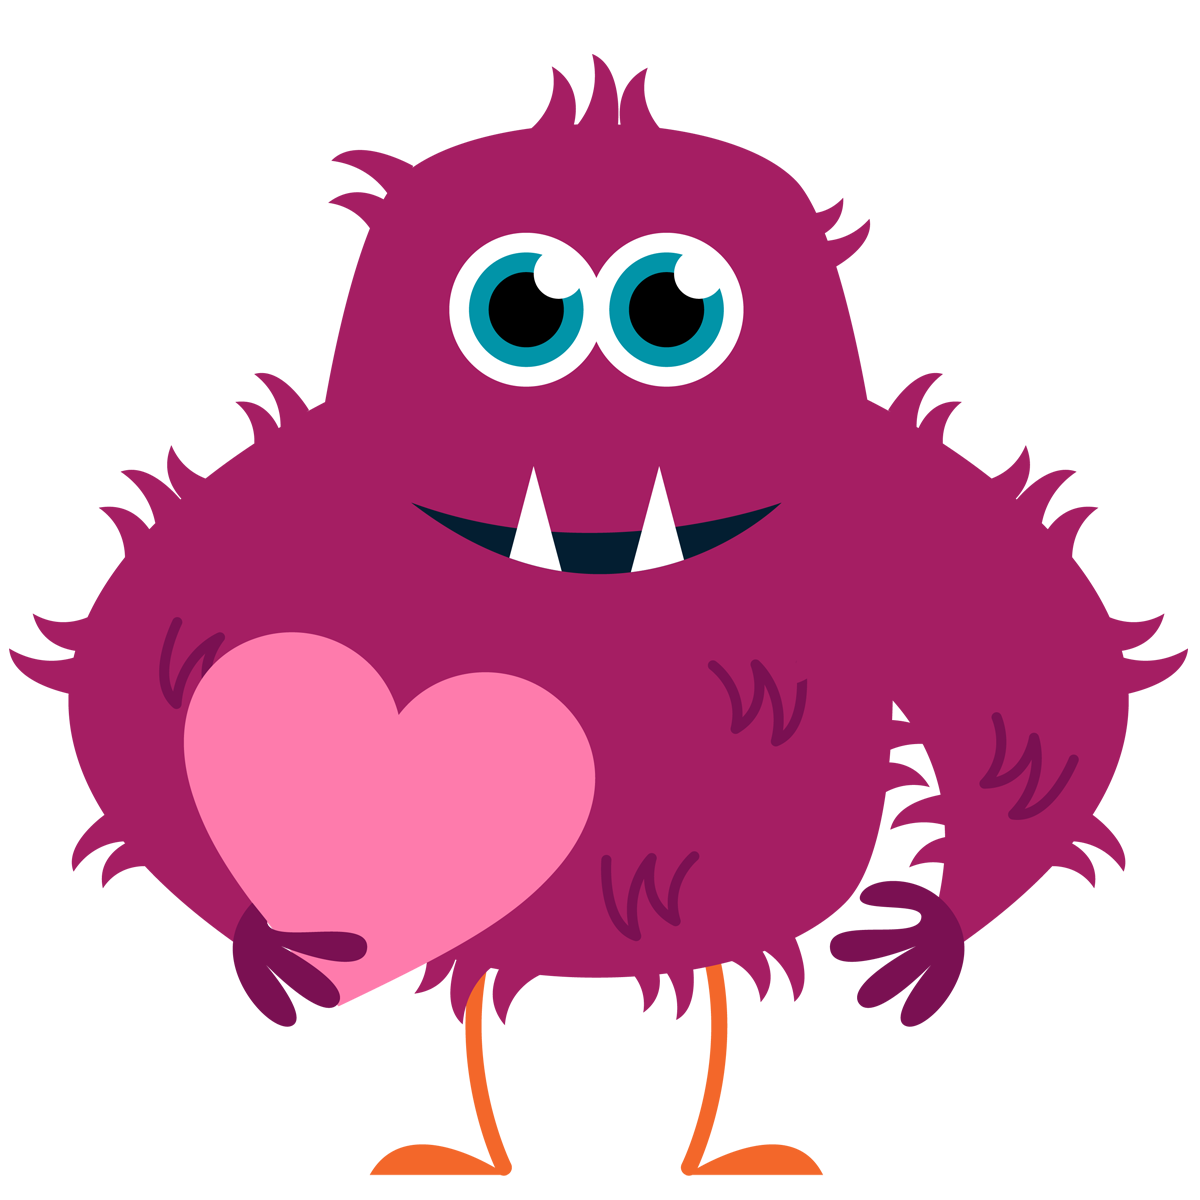 Free Valentines Day Clipart, Download Free Clip Art, Free.